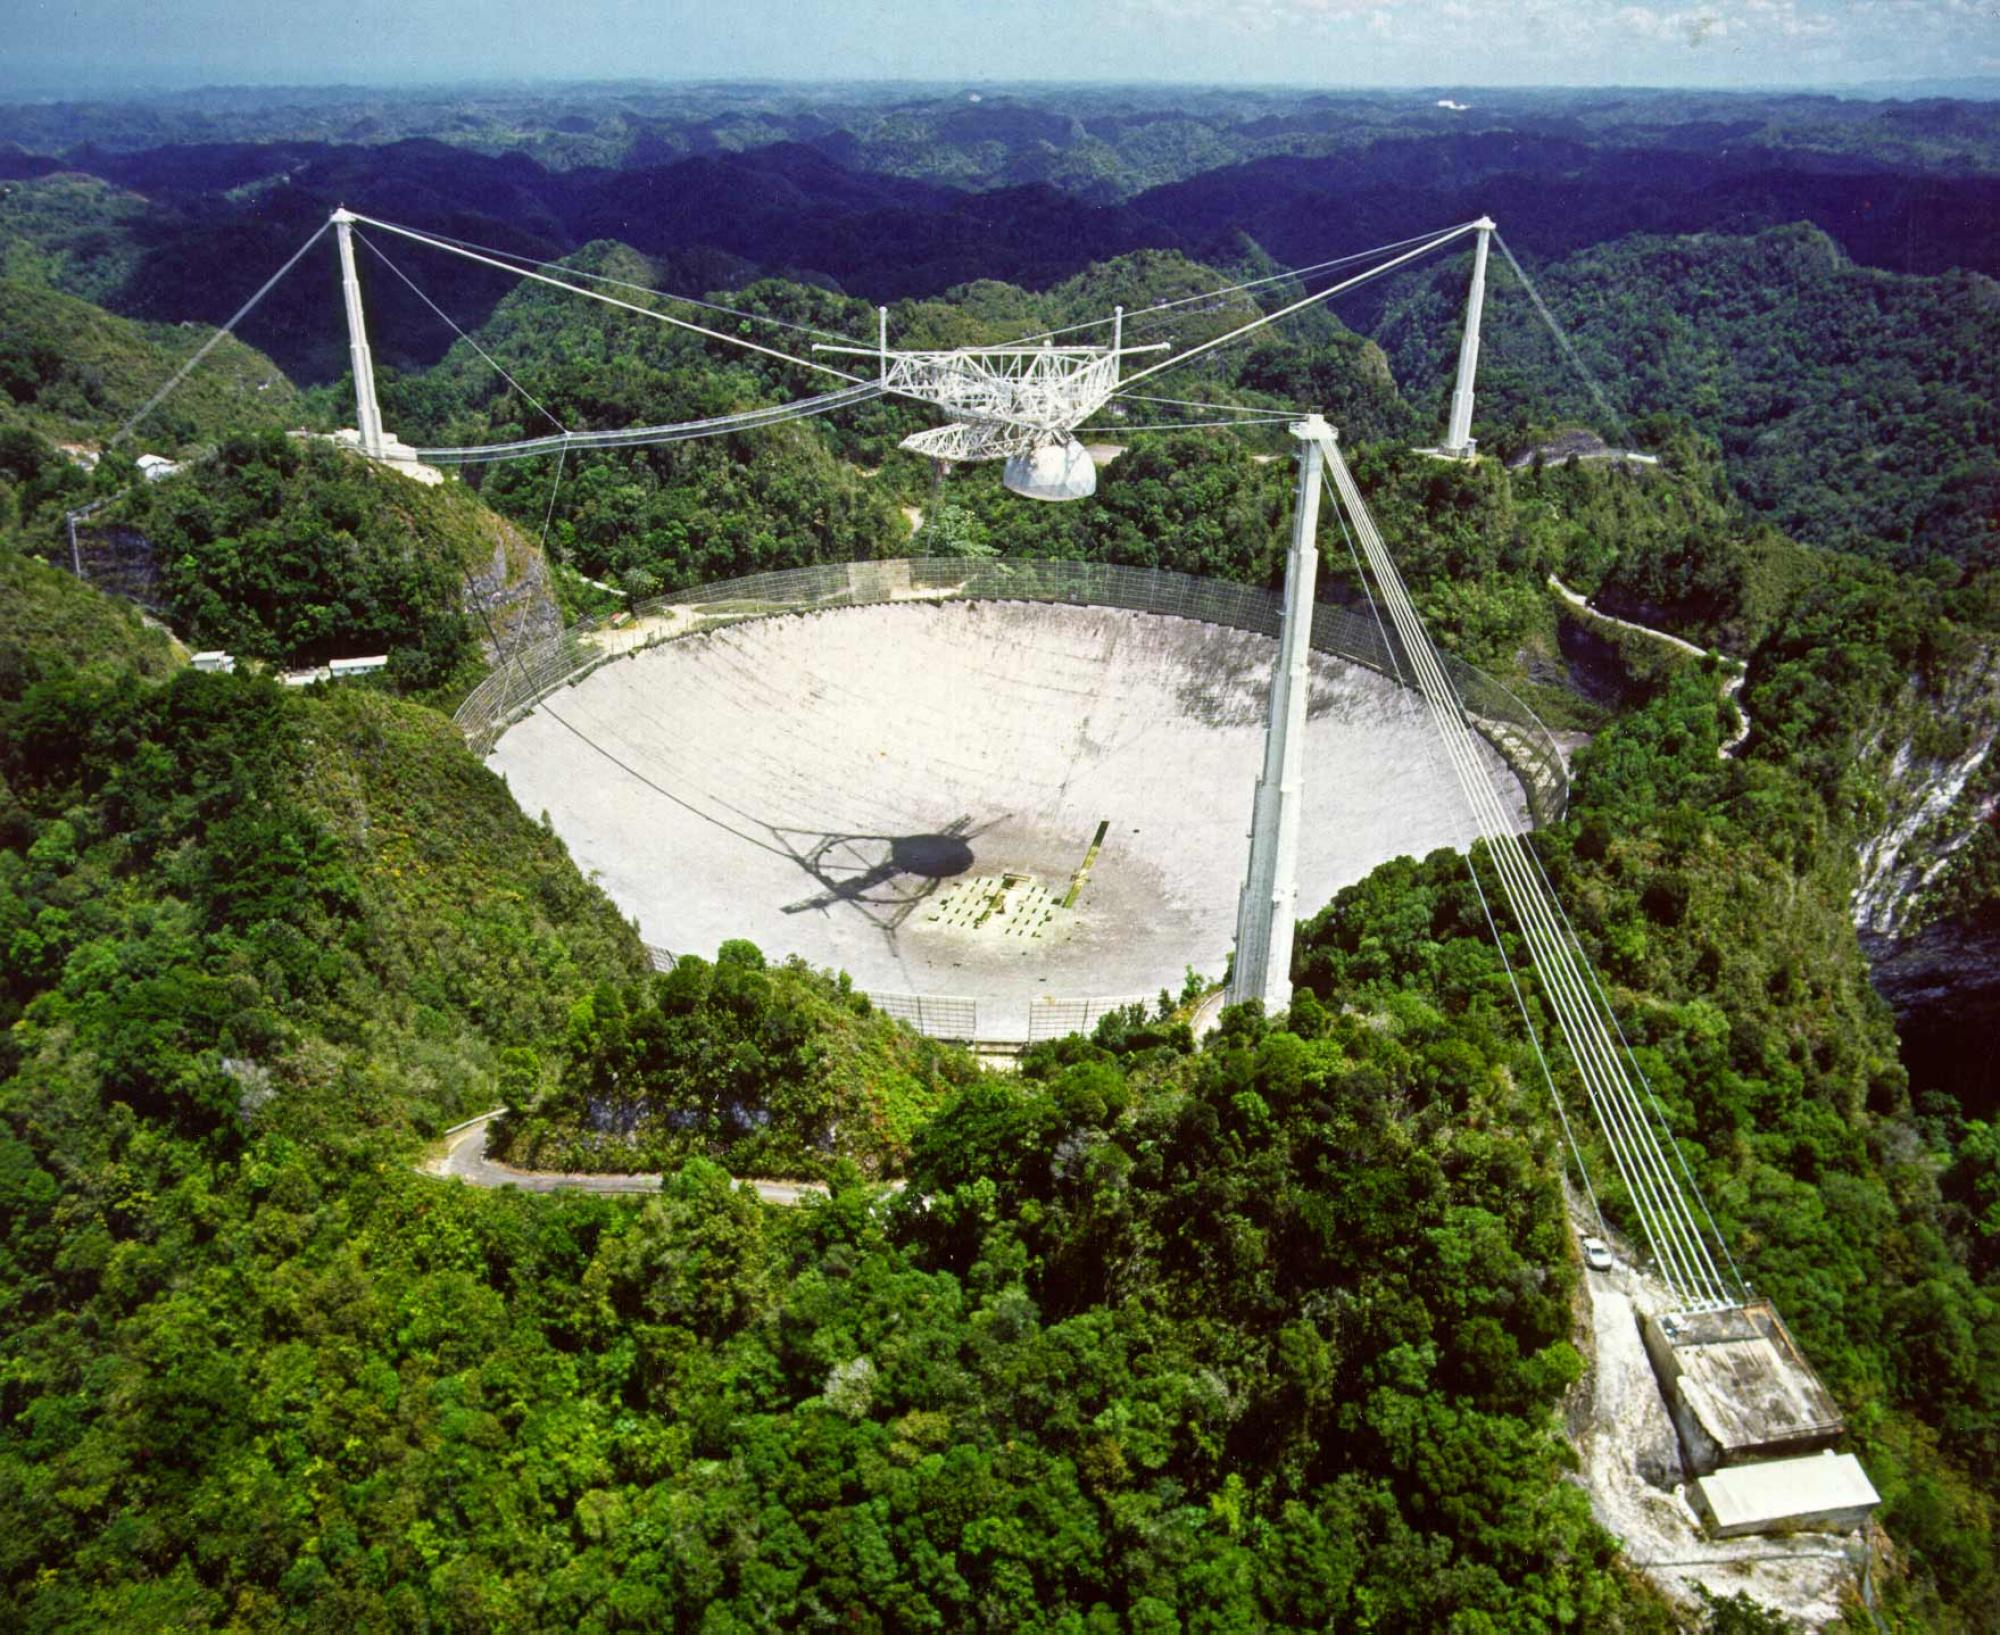 "Featured in movies such as ""Golden Eye"" and ""Contact,"" the distinctive dish of Arecibo Observatory is the world's largest single-aperture radio telescope. For this study, it was used to measure the distance between Earth and asteroid 1999 RQ36 to an accur"